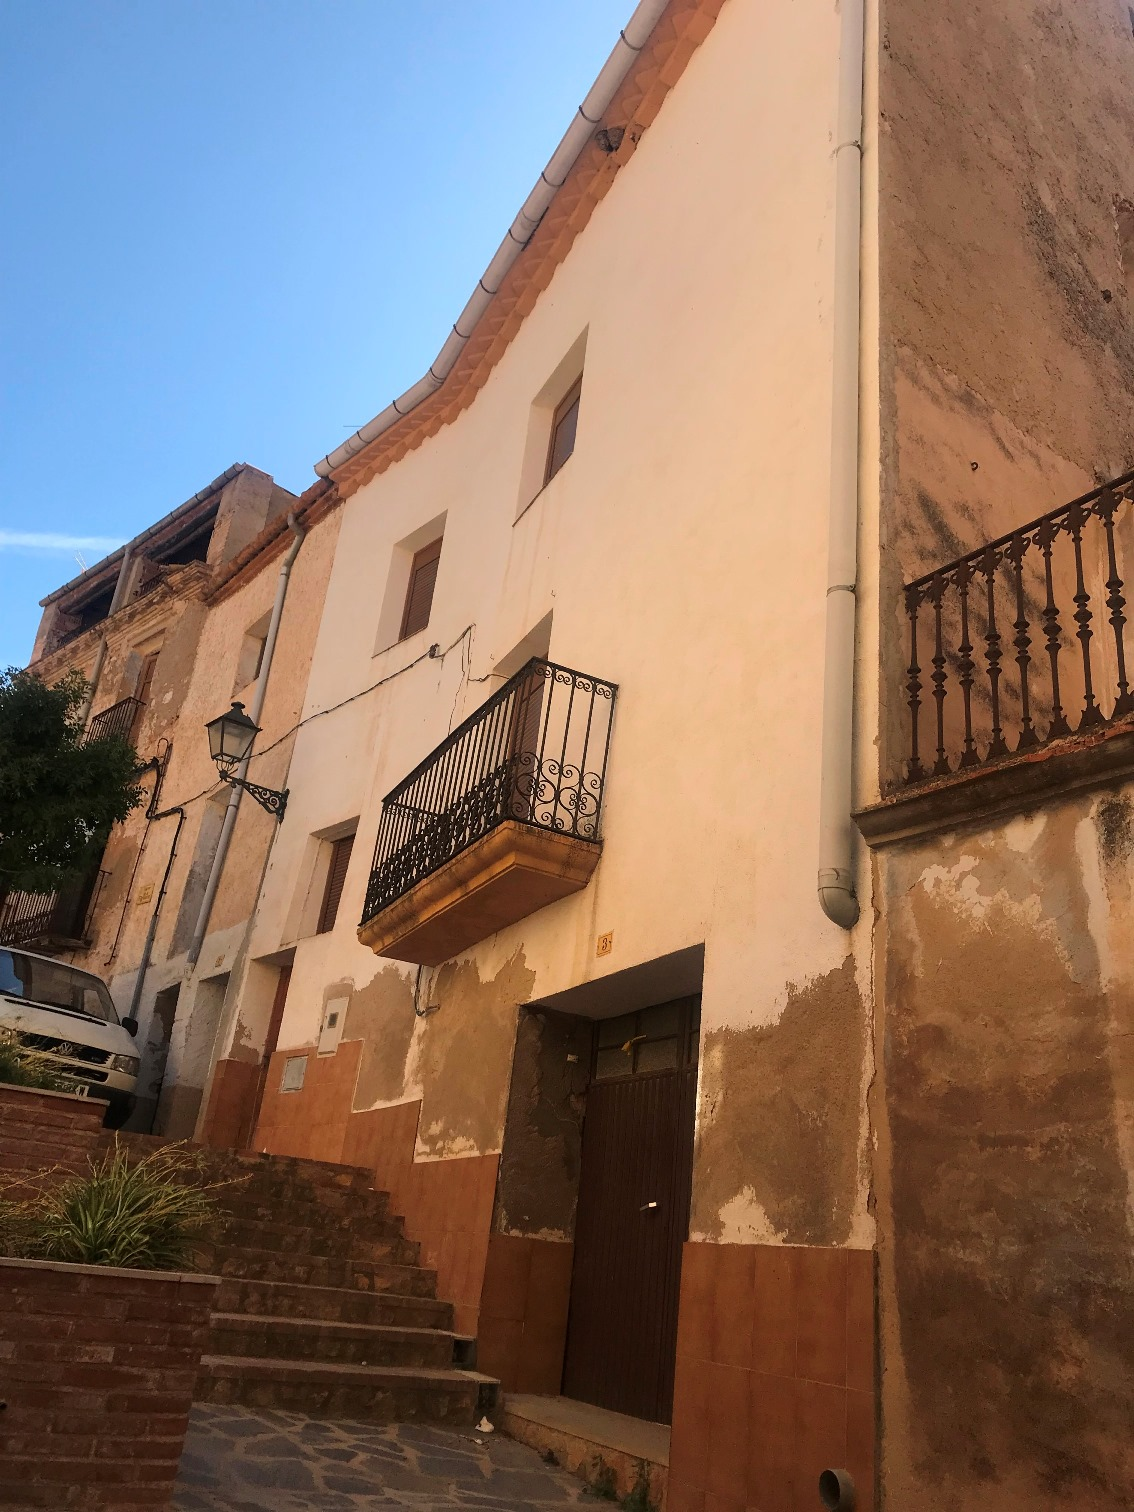 PRATD E COMTE, 5 Bedrooms Bedrooms, 3 Rooms Rooms,2 BathroomsBathrooms,Casa de Poble,Urbana,PRATD E COMTE,1169